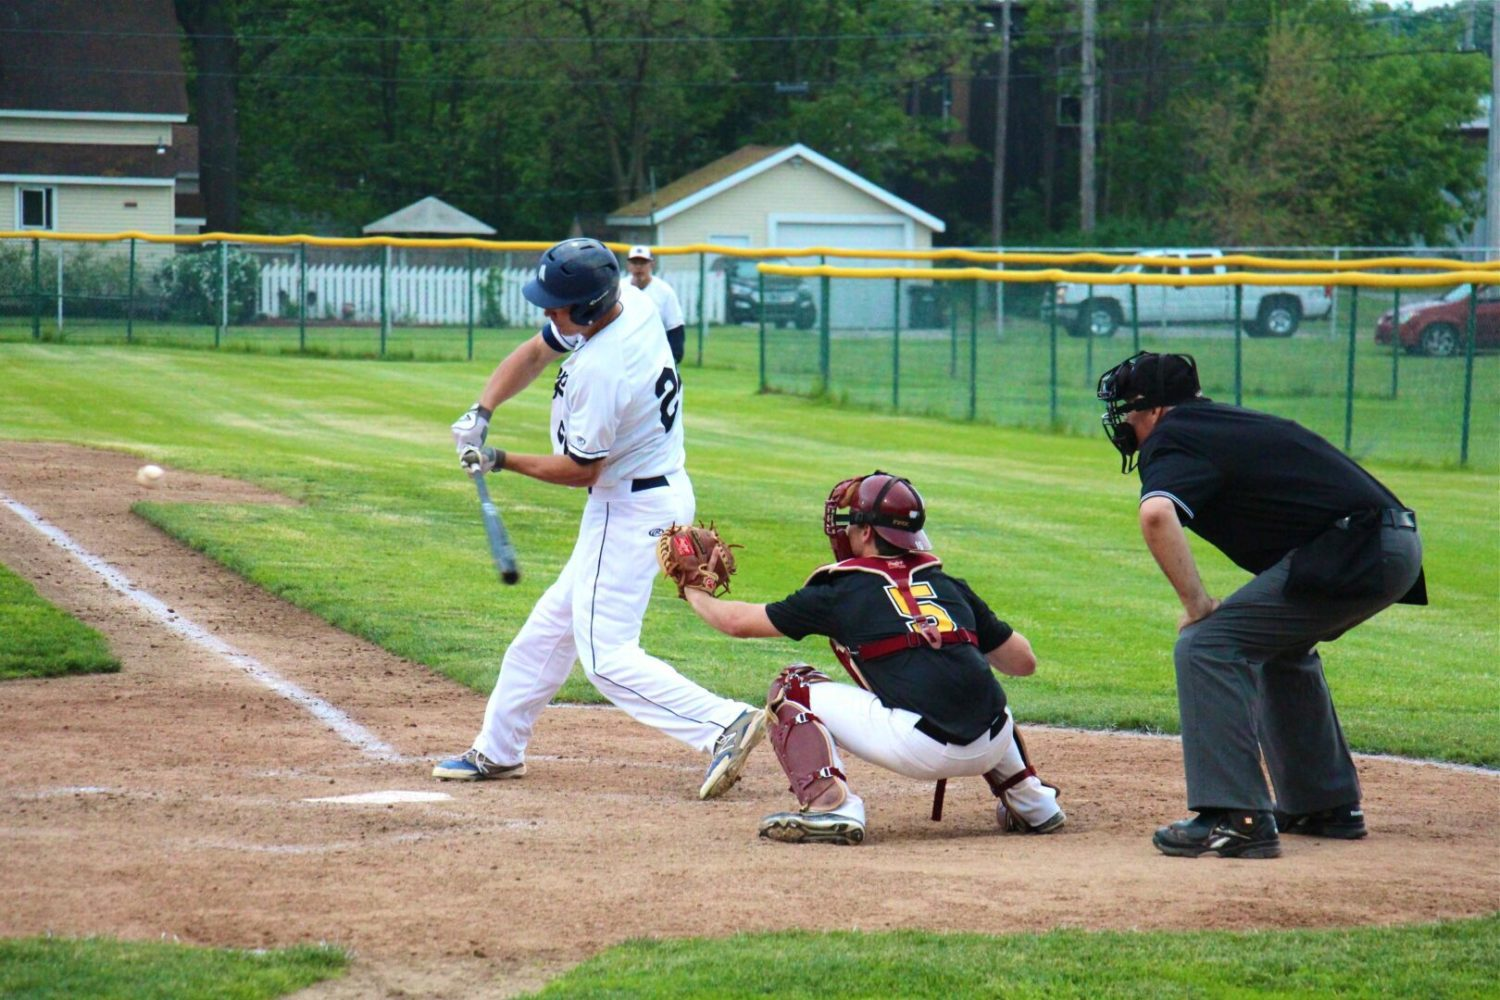 Potts' dramatic three-run homer gives the Muskegon Clippers a 7-5 opening night victory [VIDEO]